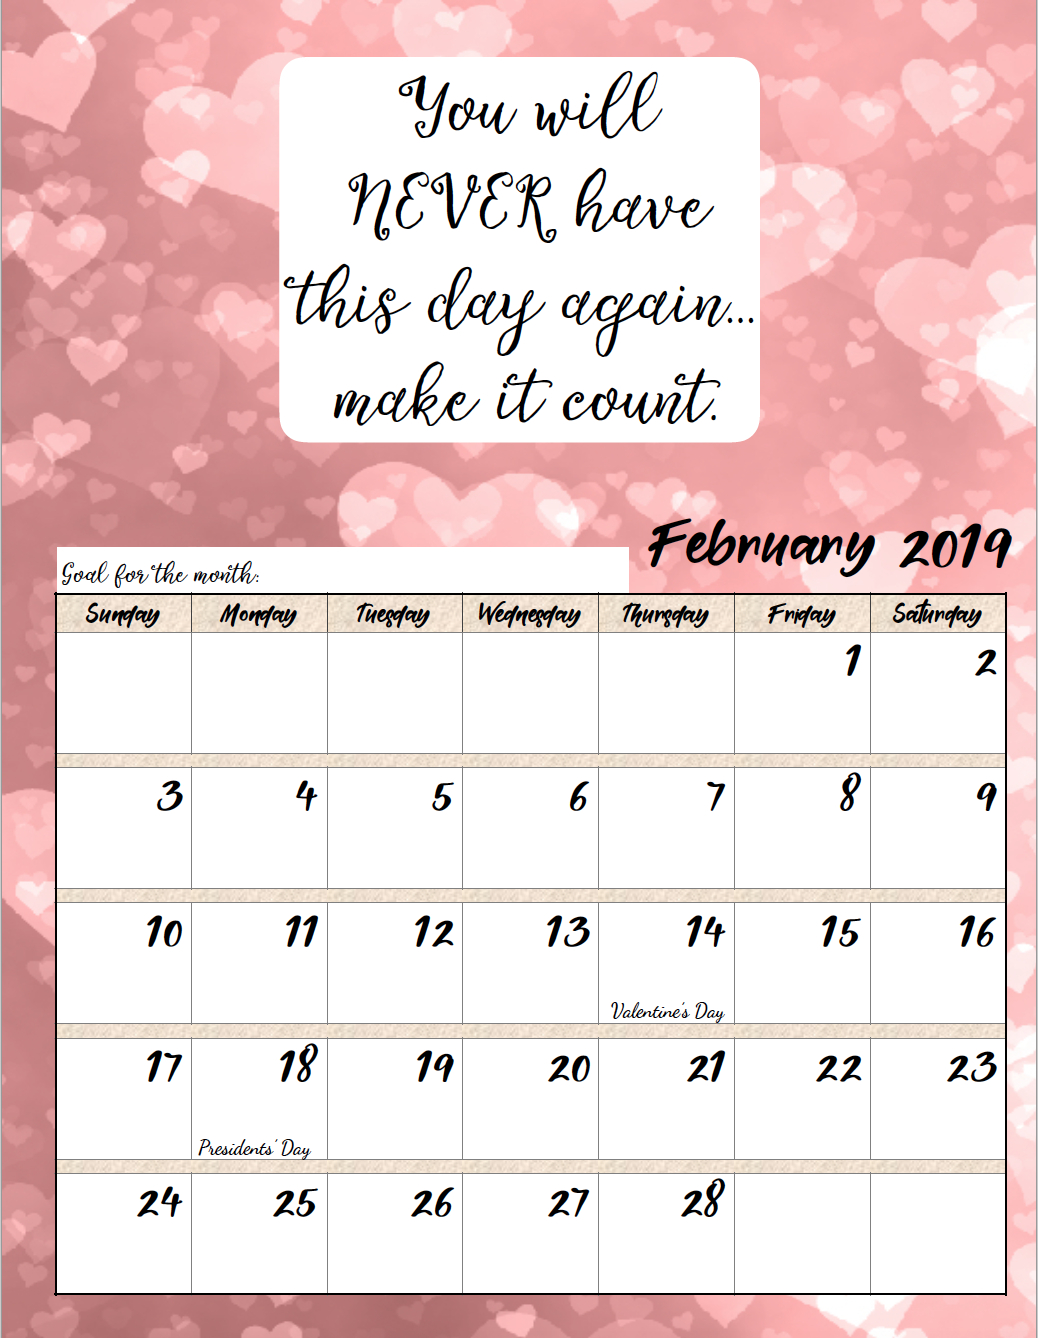 Free Printable 2019 Monthly Motivational Calendars regarding Free Printable Calendar 2020 Motivational